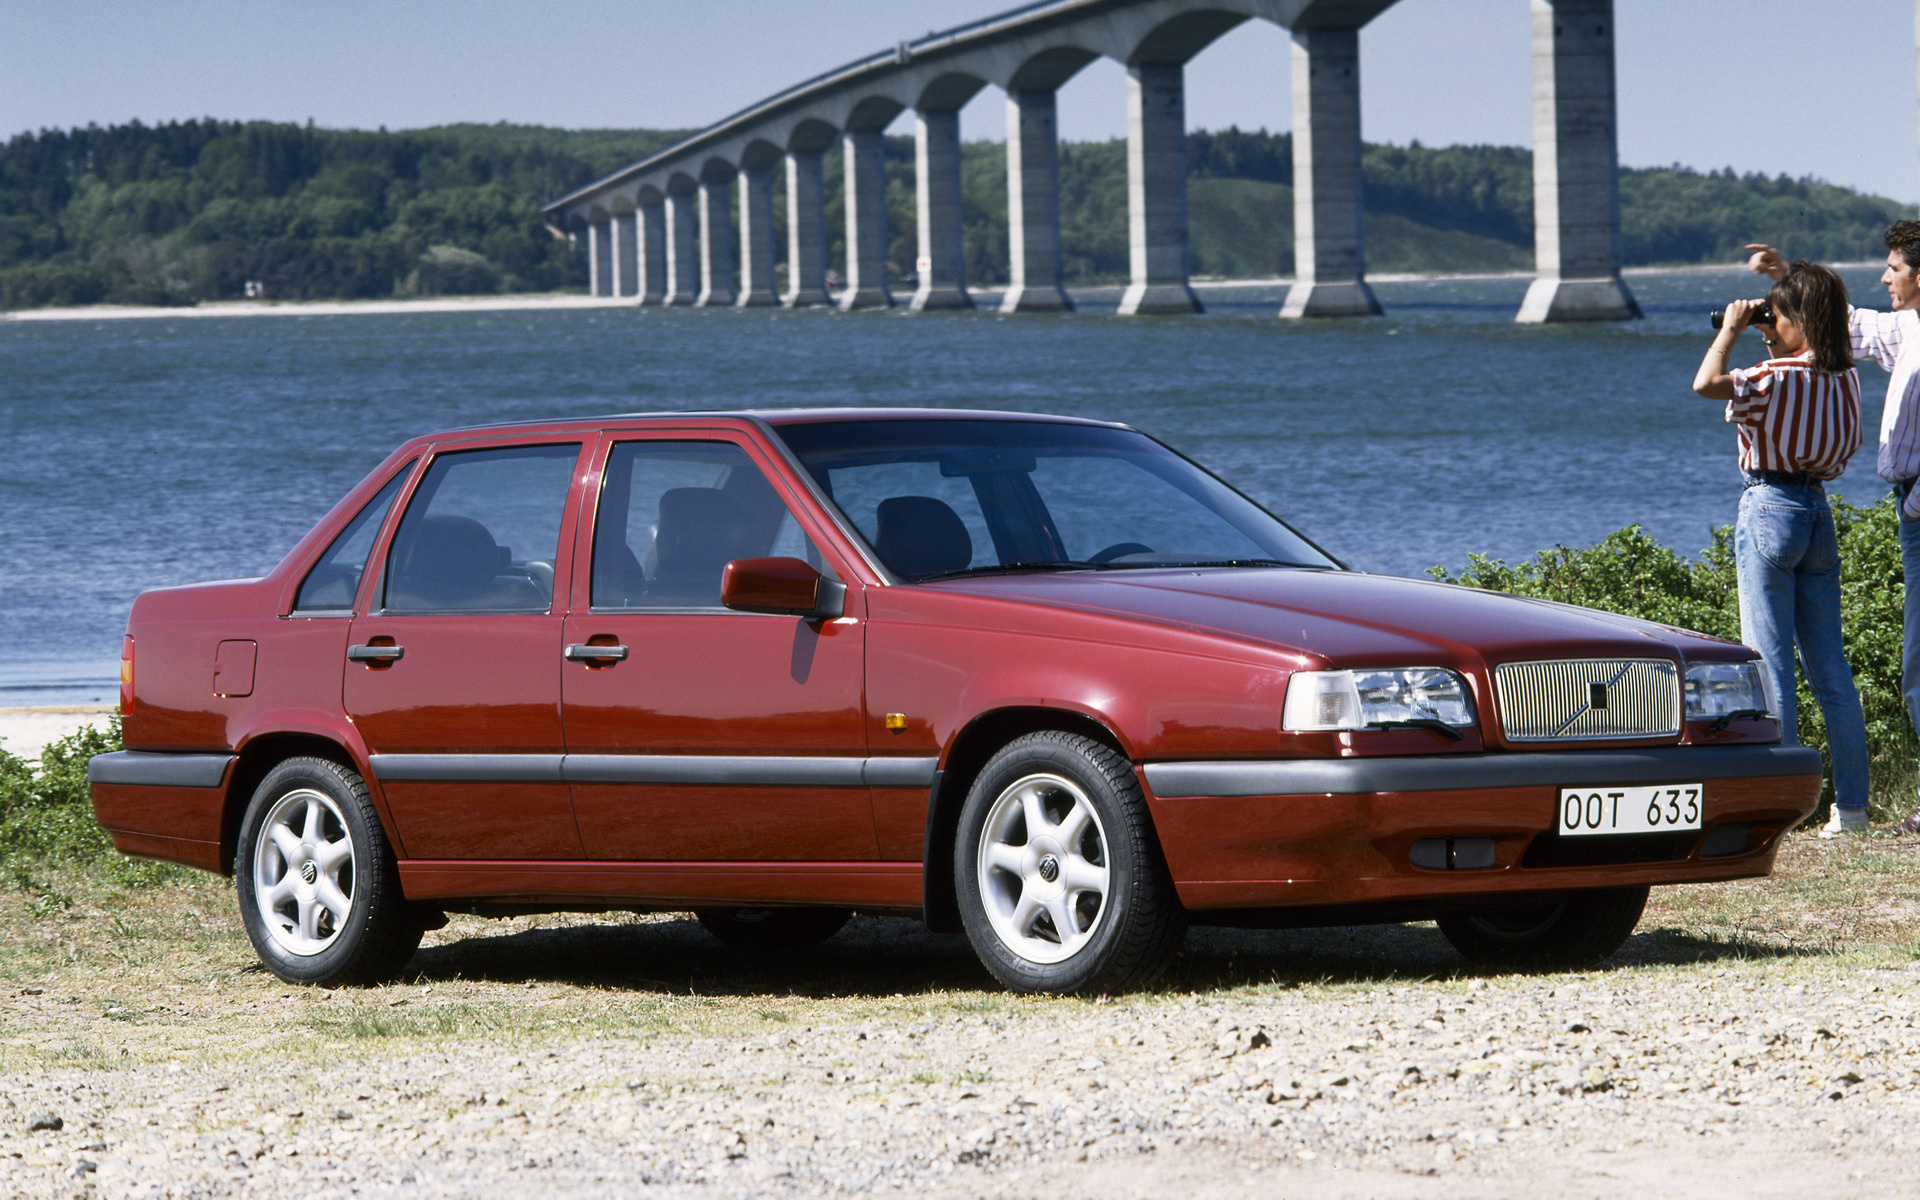 Volvo 850 GLT (1993) Wallpapers and HD Images - Car Pixel